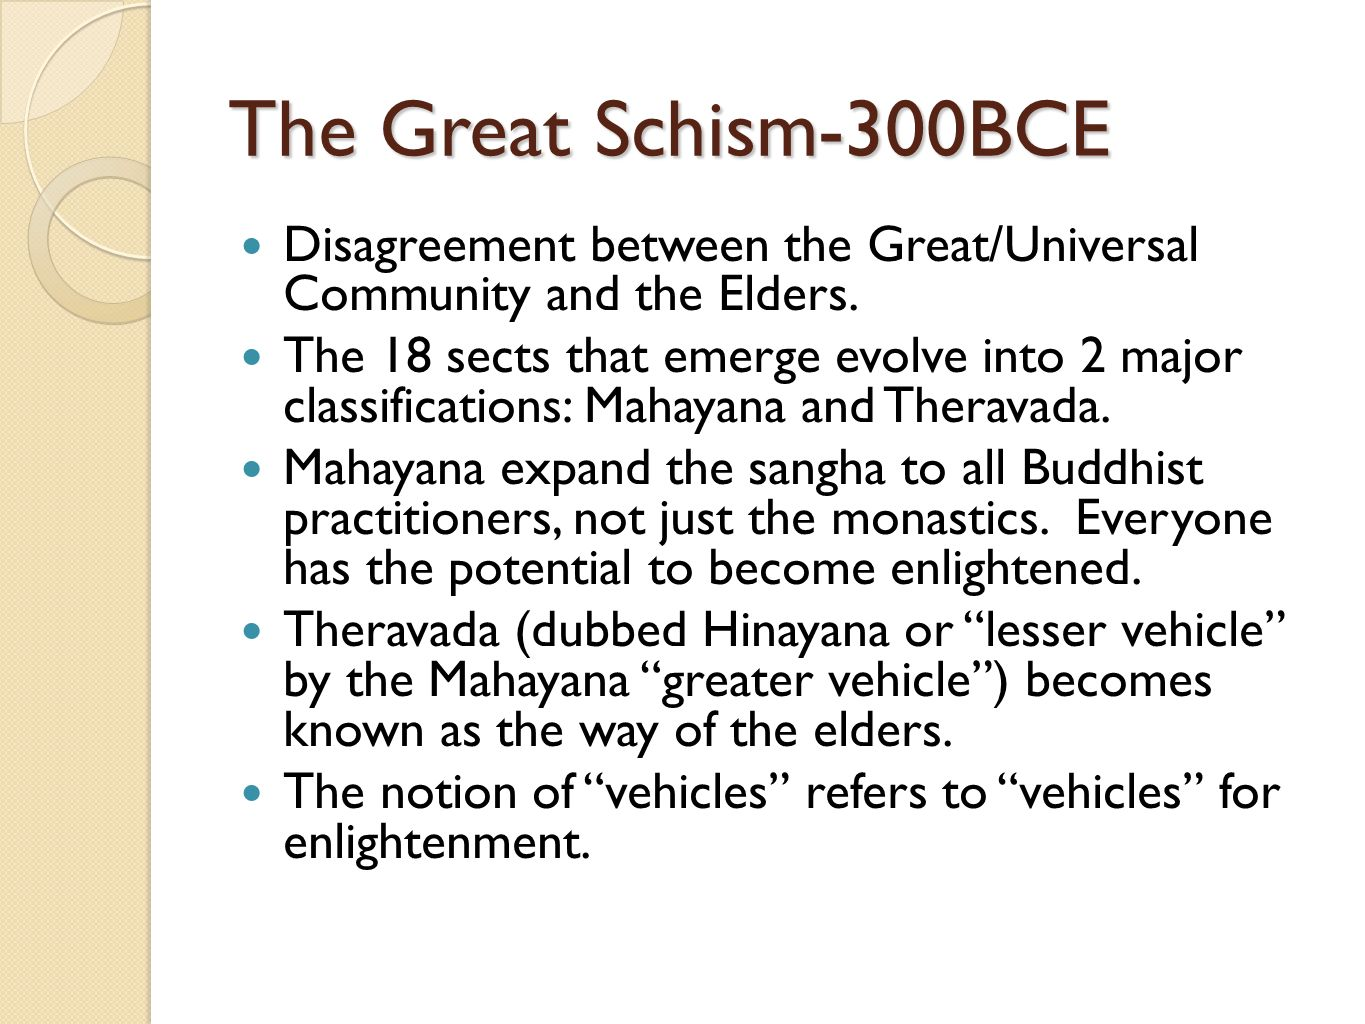 The Great Schism-300BCE Disagreement between the Great/Universal Community and the Elders.